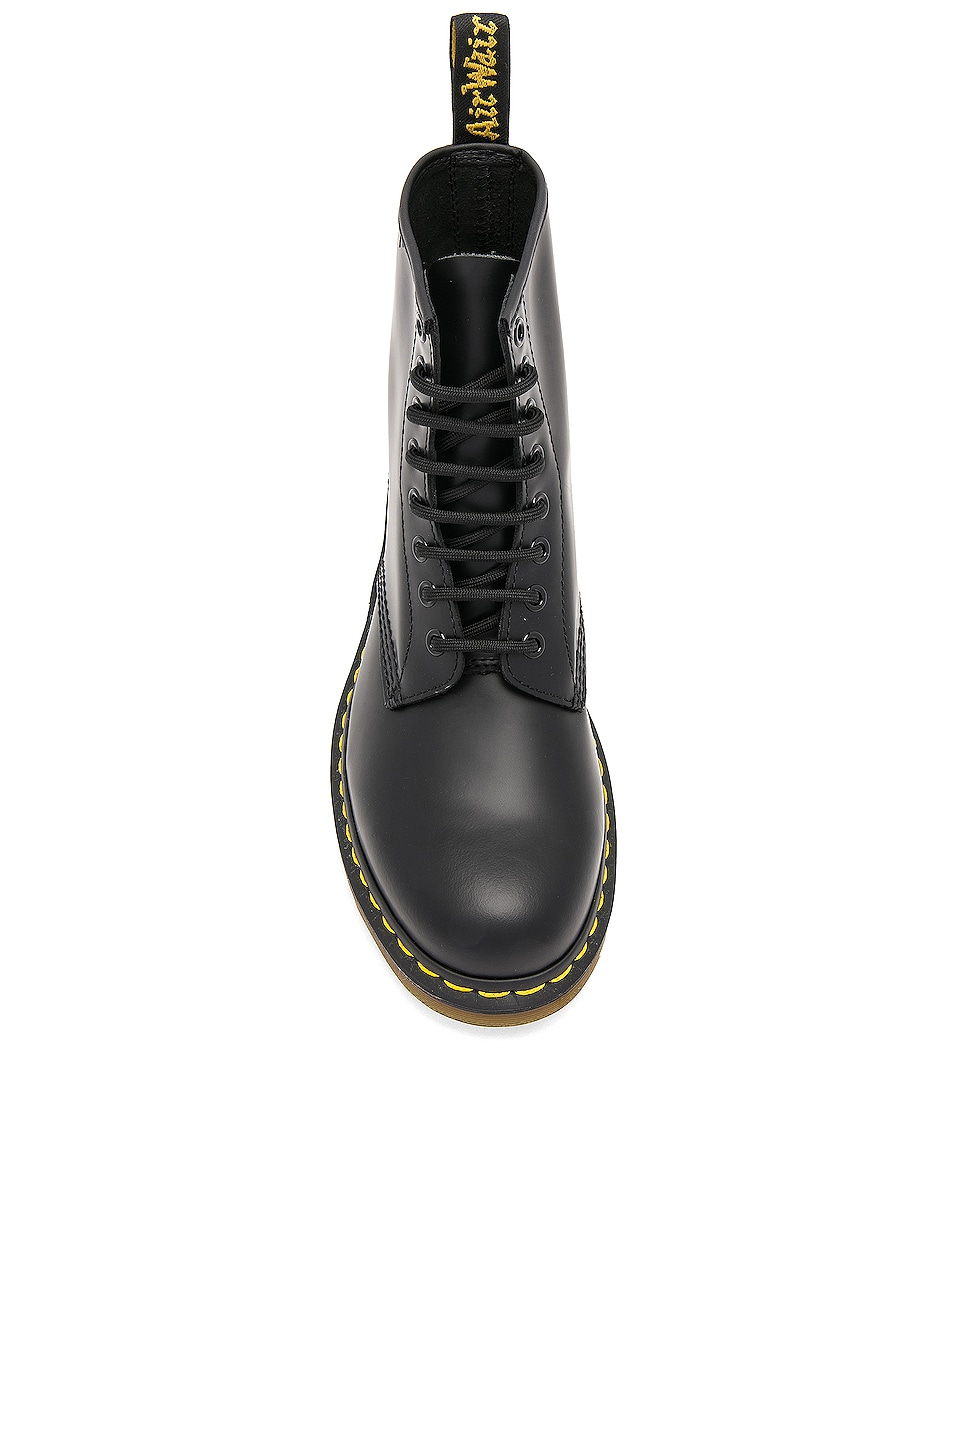 Image 4 of Dr. Martens 1460 8 Eye Leather Boots in Black